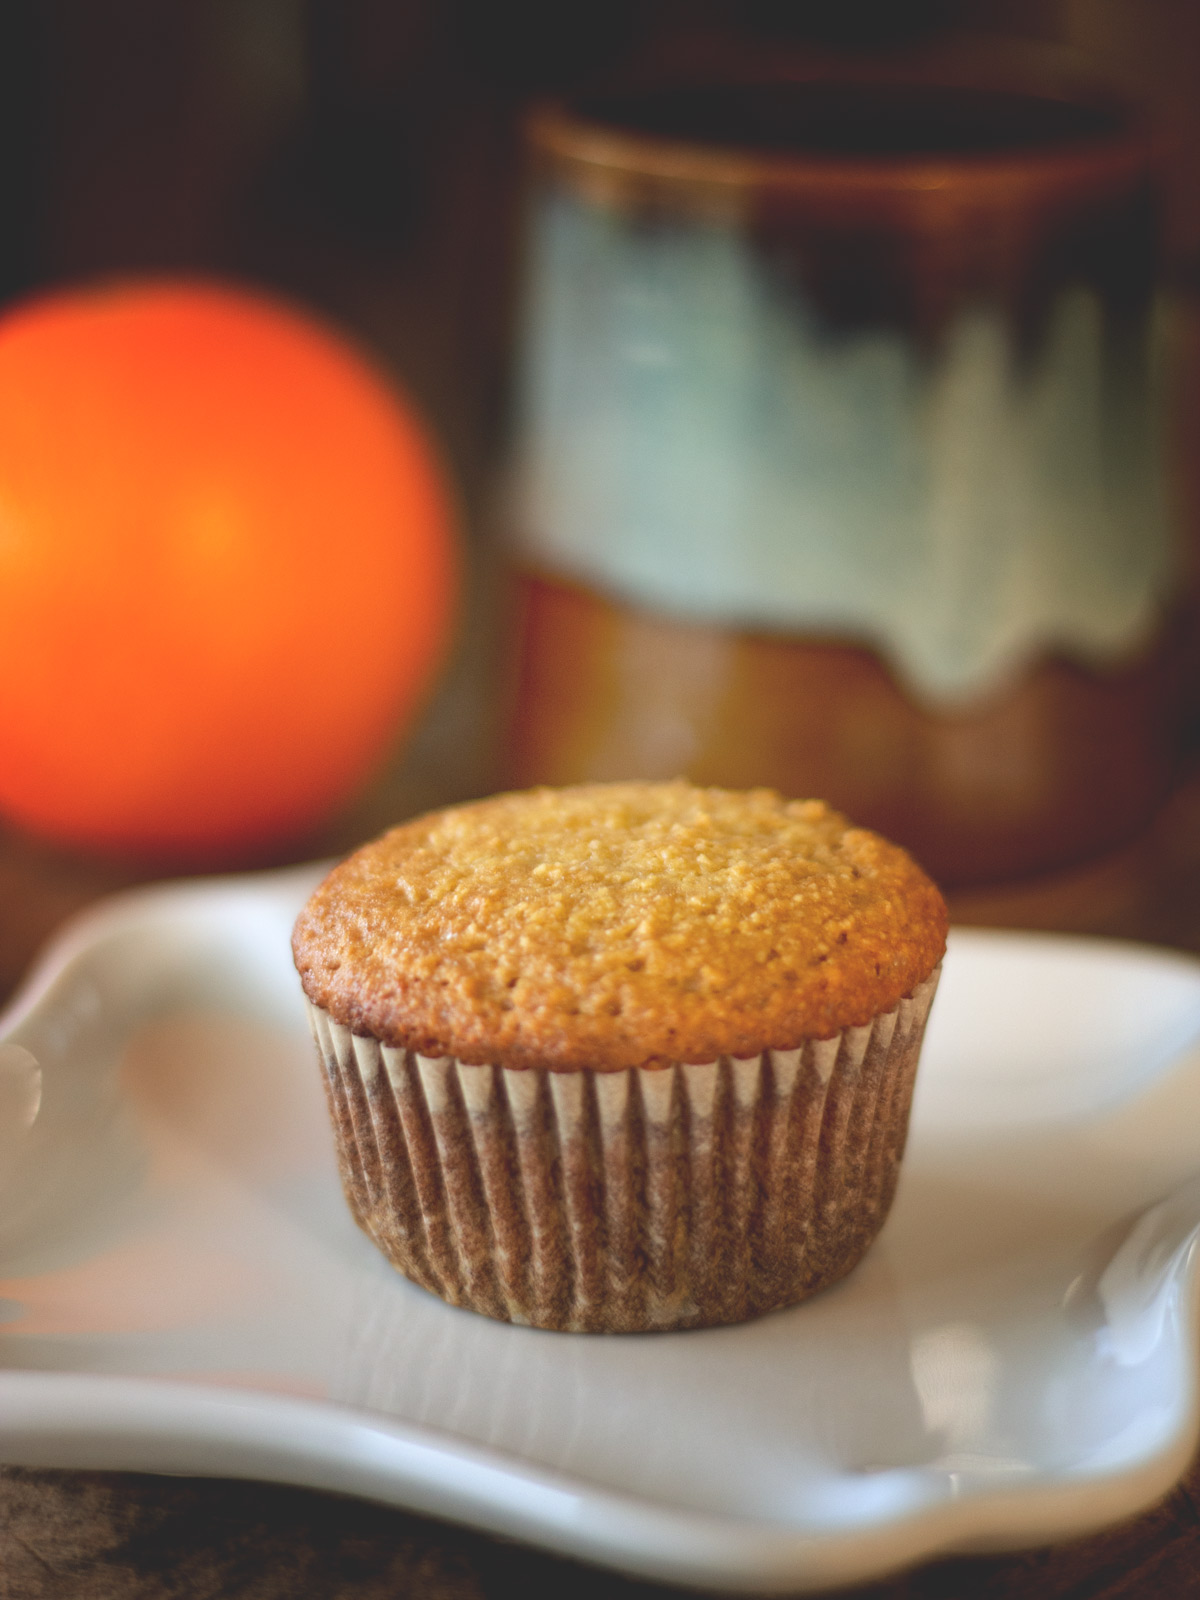 Paleo Orange Muffins are healthy and delicious breakfast muffins, made from scratch with orange juice and orange zest.